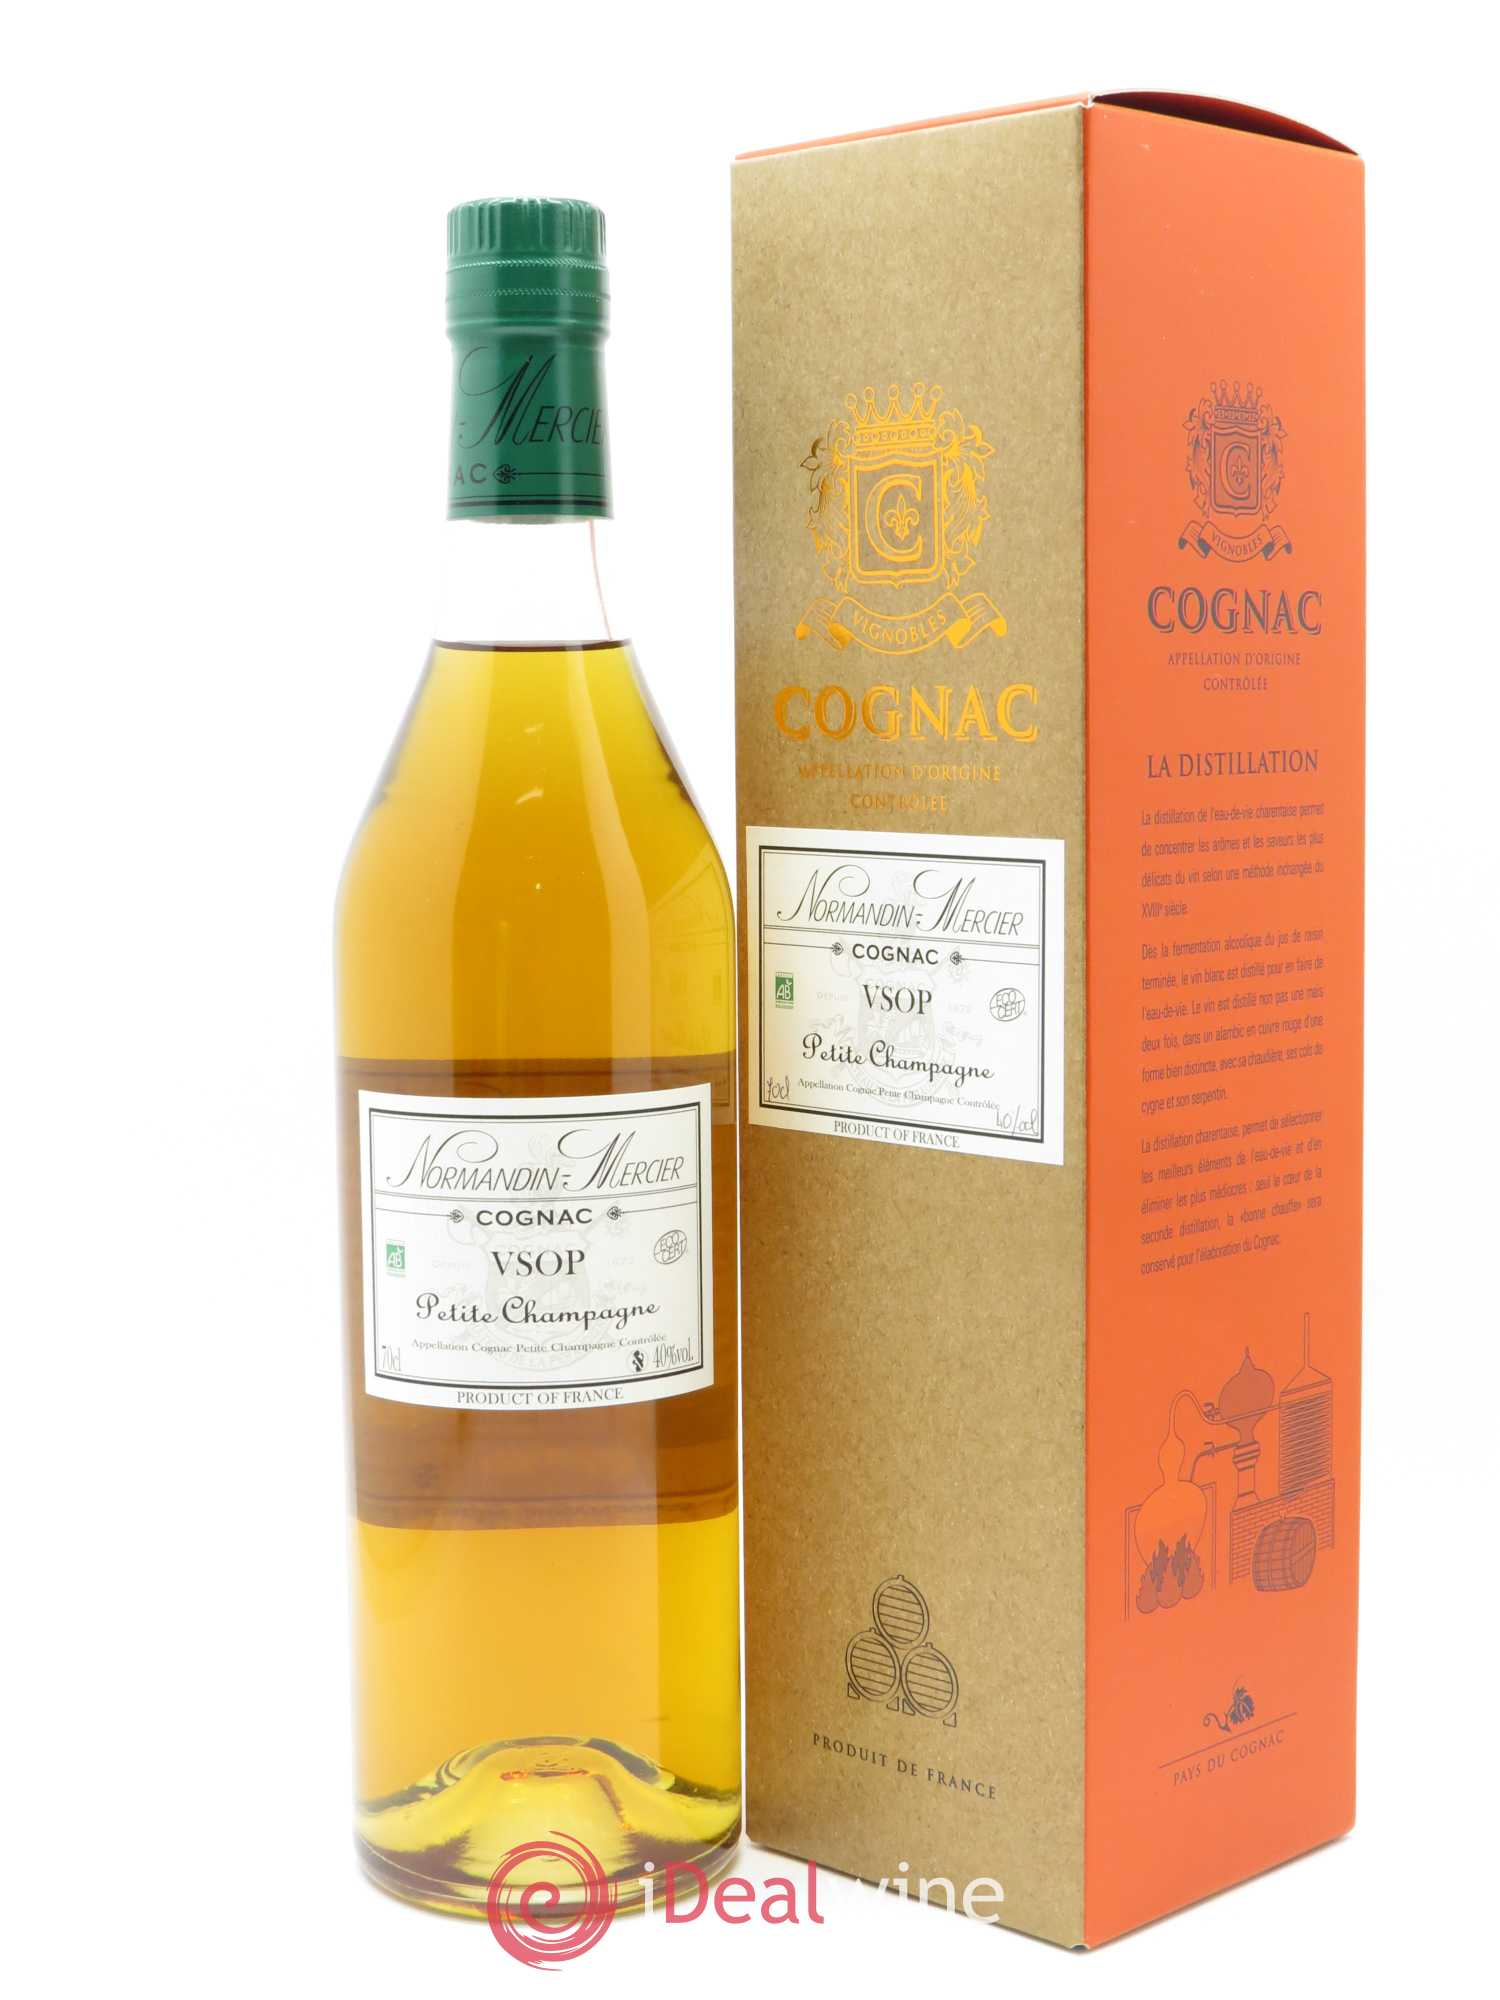 Cognac V.S.O.P Normandin-Mercier (70cl)  - Lot of 1 Bottle